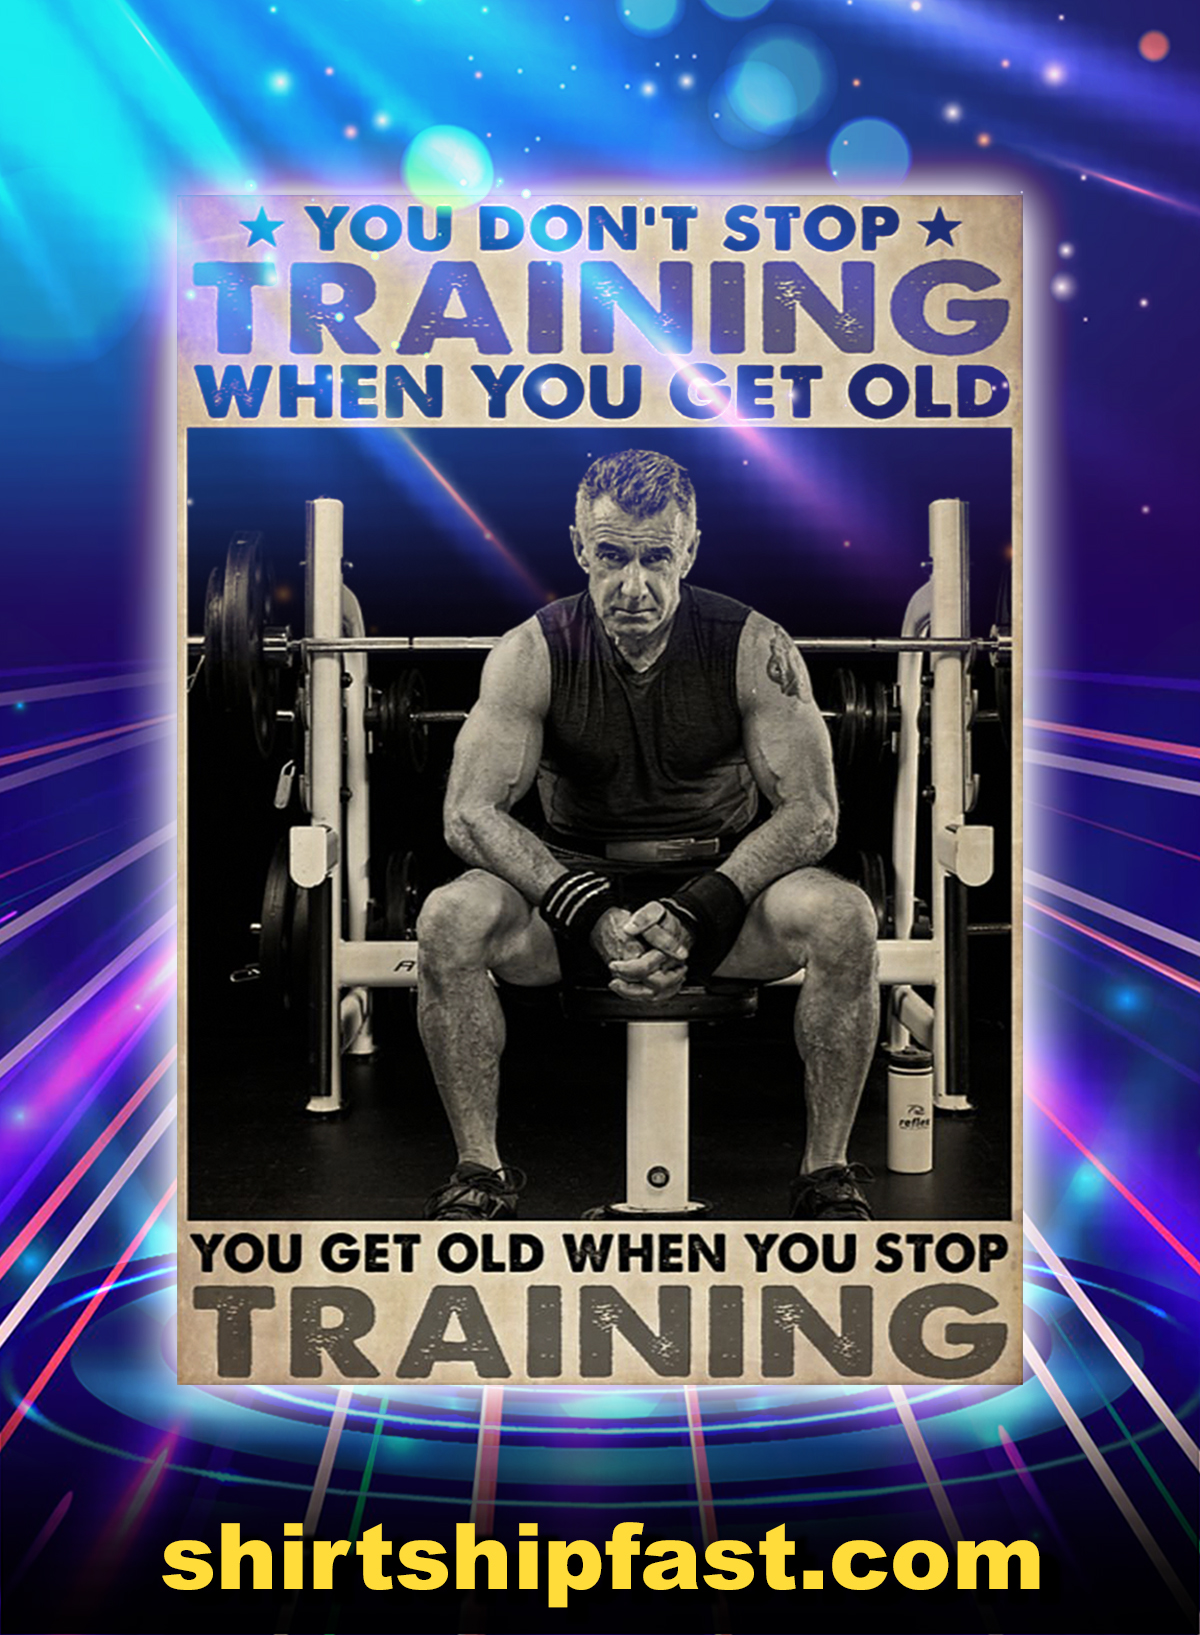 Poster Bodybuilding you don't stop training when you get old - A1